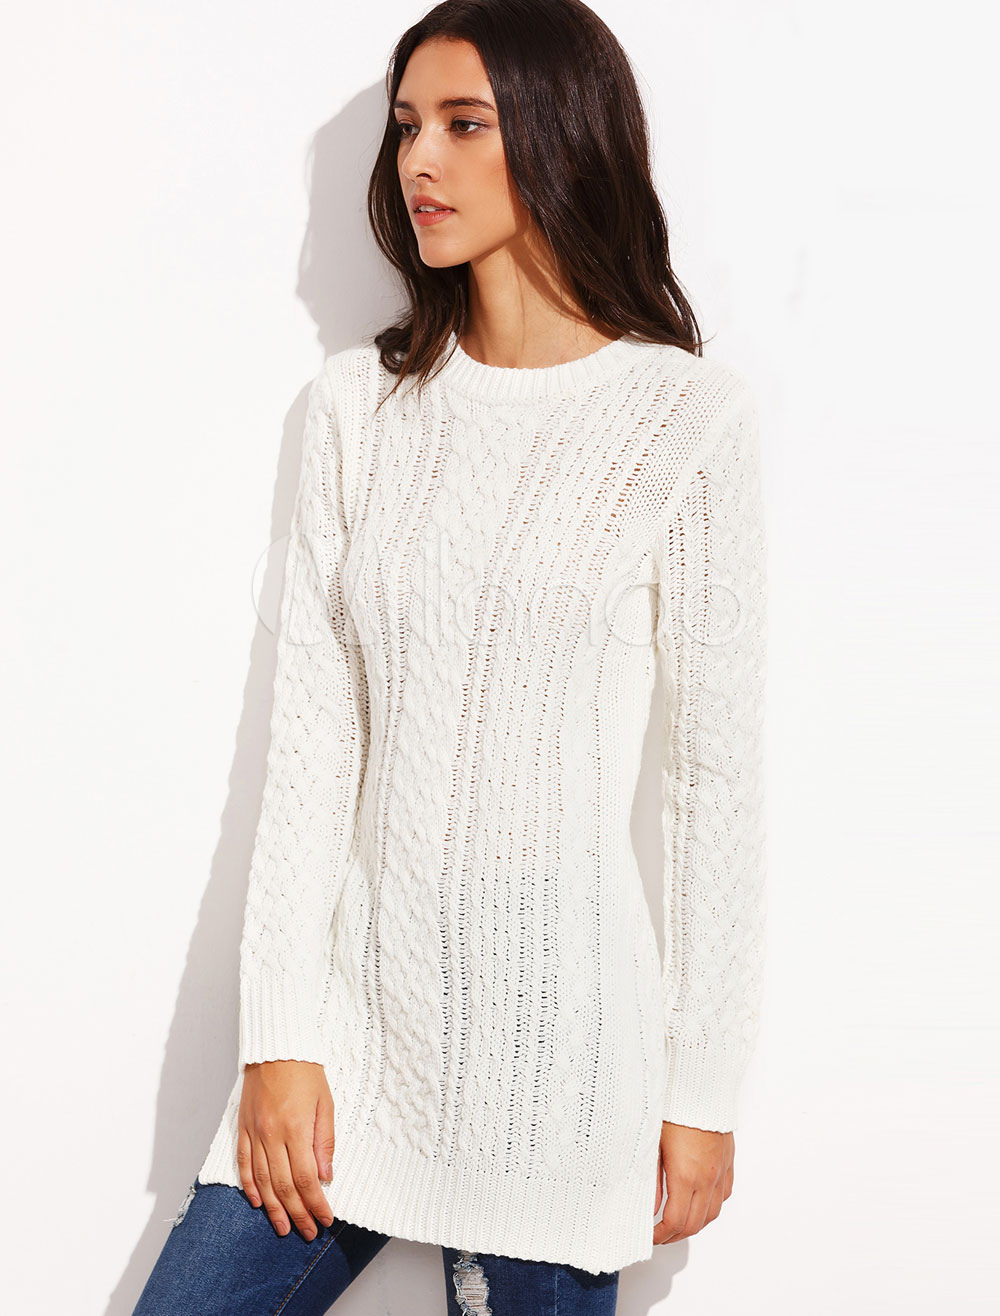 Buy Cable Knit Sweater White Pullover Women's Long Sleeve Side Split Crewneck Longline Sweater for $35.99 in Milanoo store